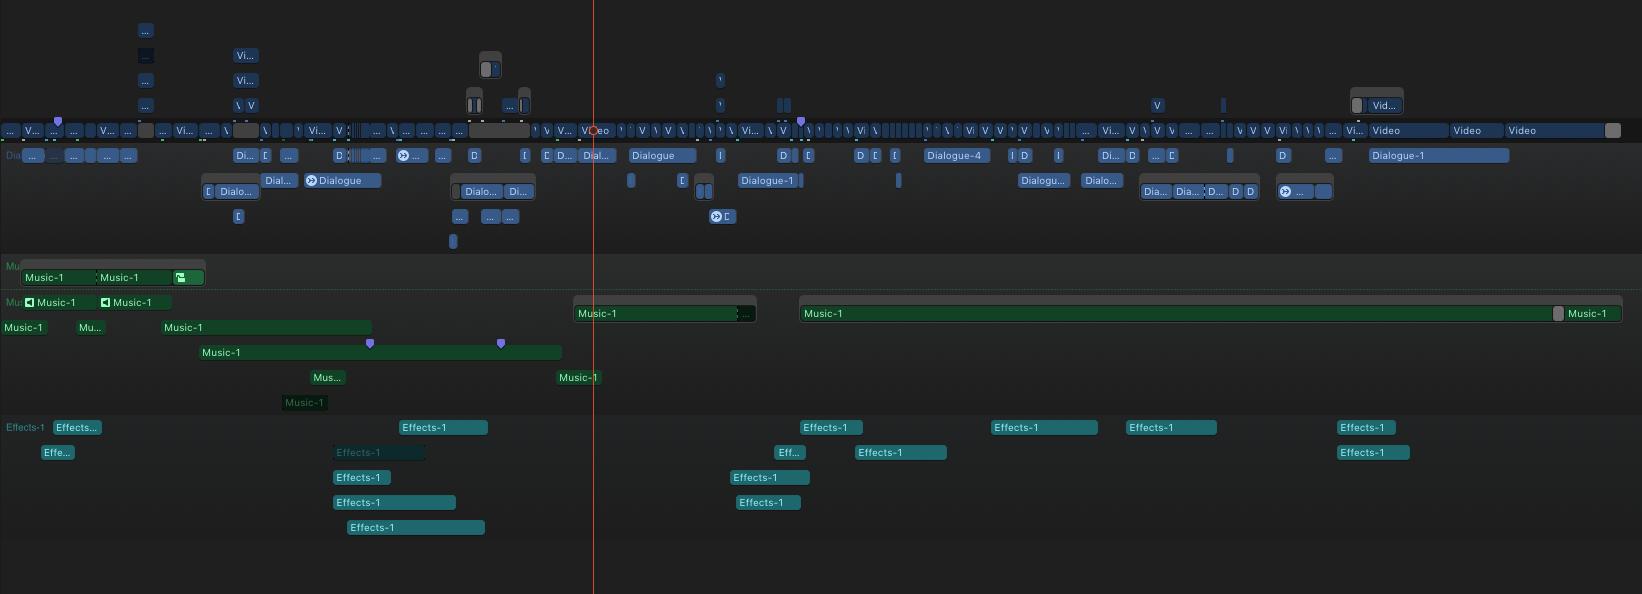 The final edit, with Roles keeping everything nice and tidy.